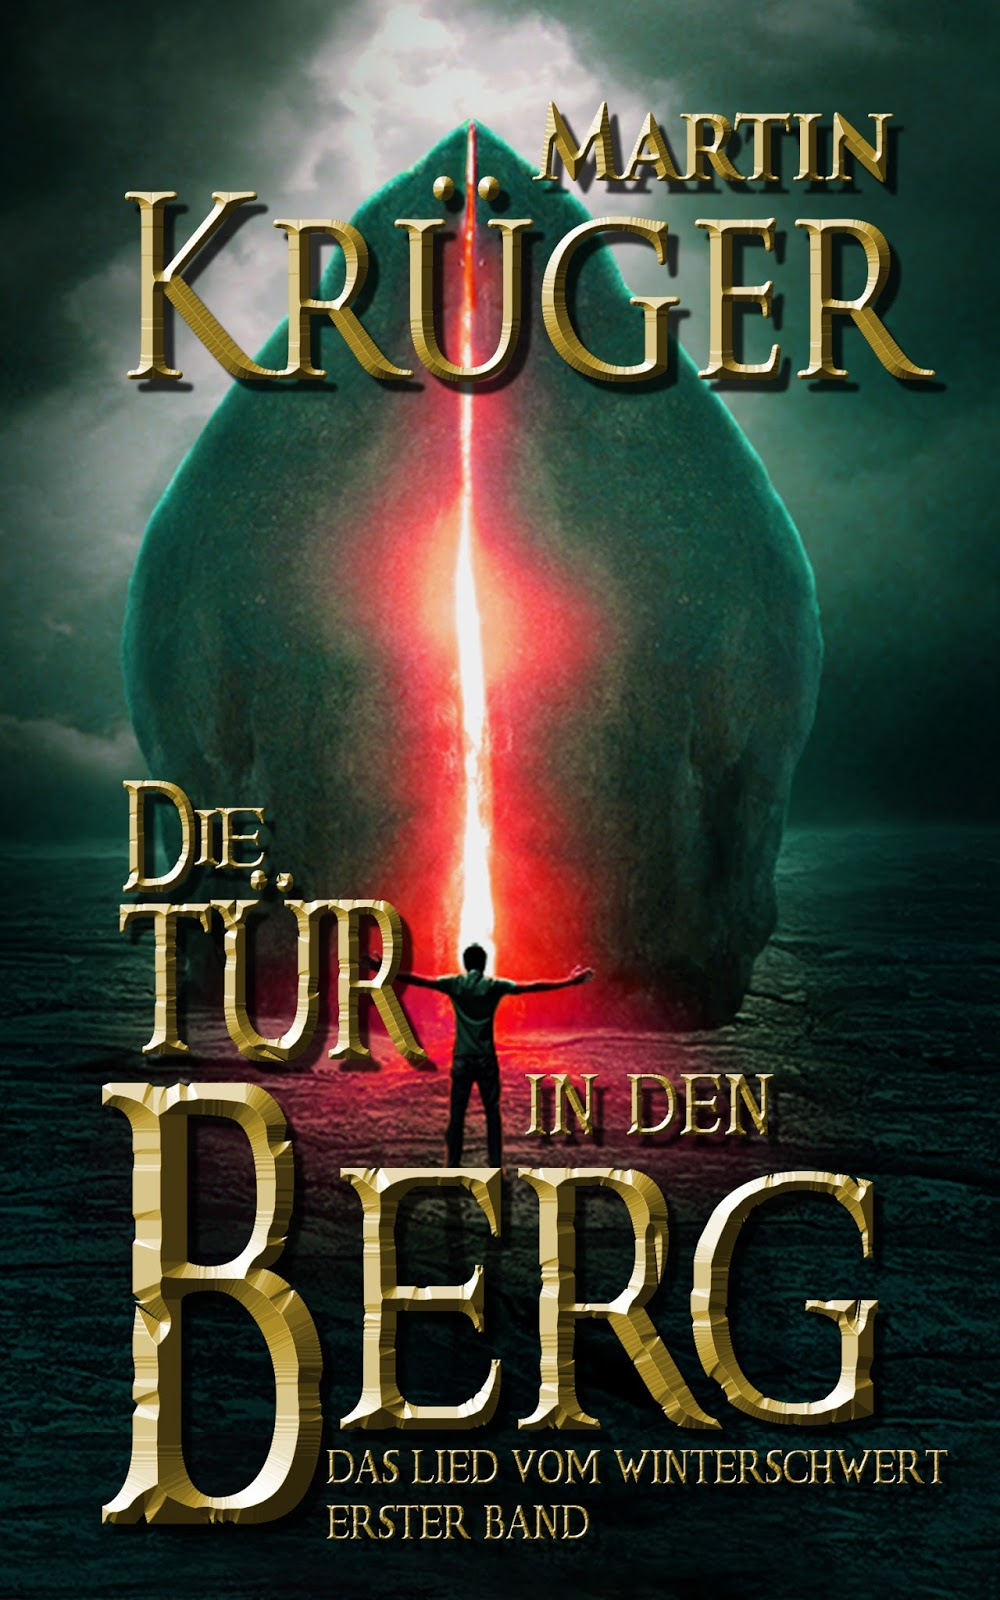 http://www.amazon.de/gp/product/B00M2AOB1A